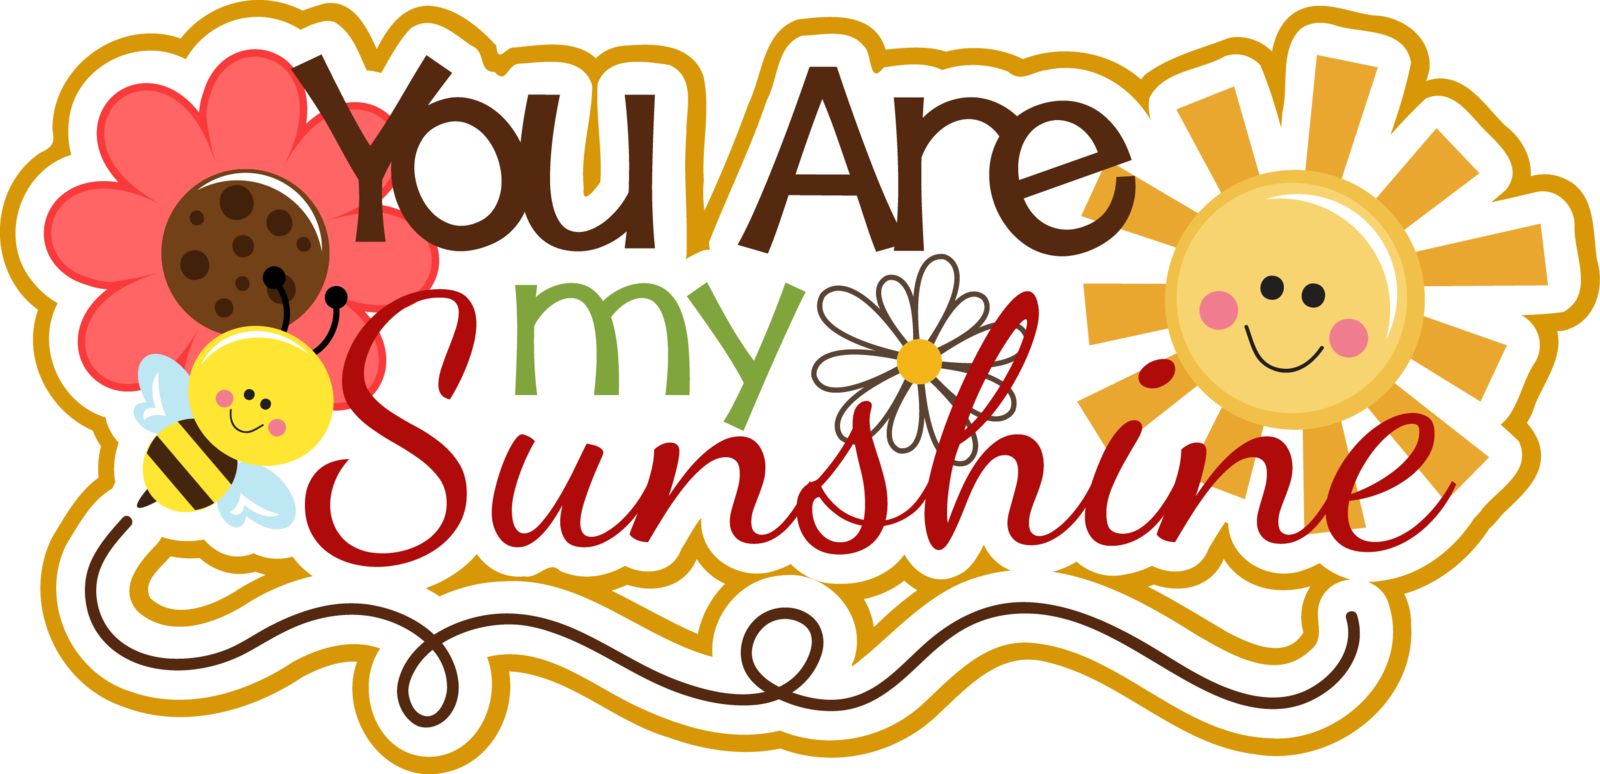 You are my sunshine png. Gigs creative closet motivational